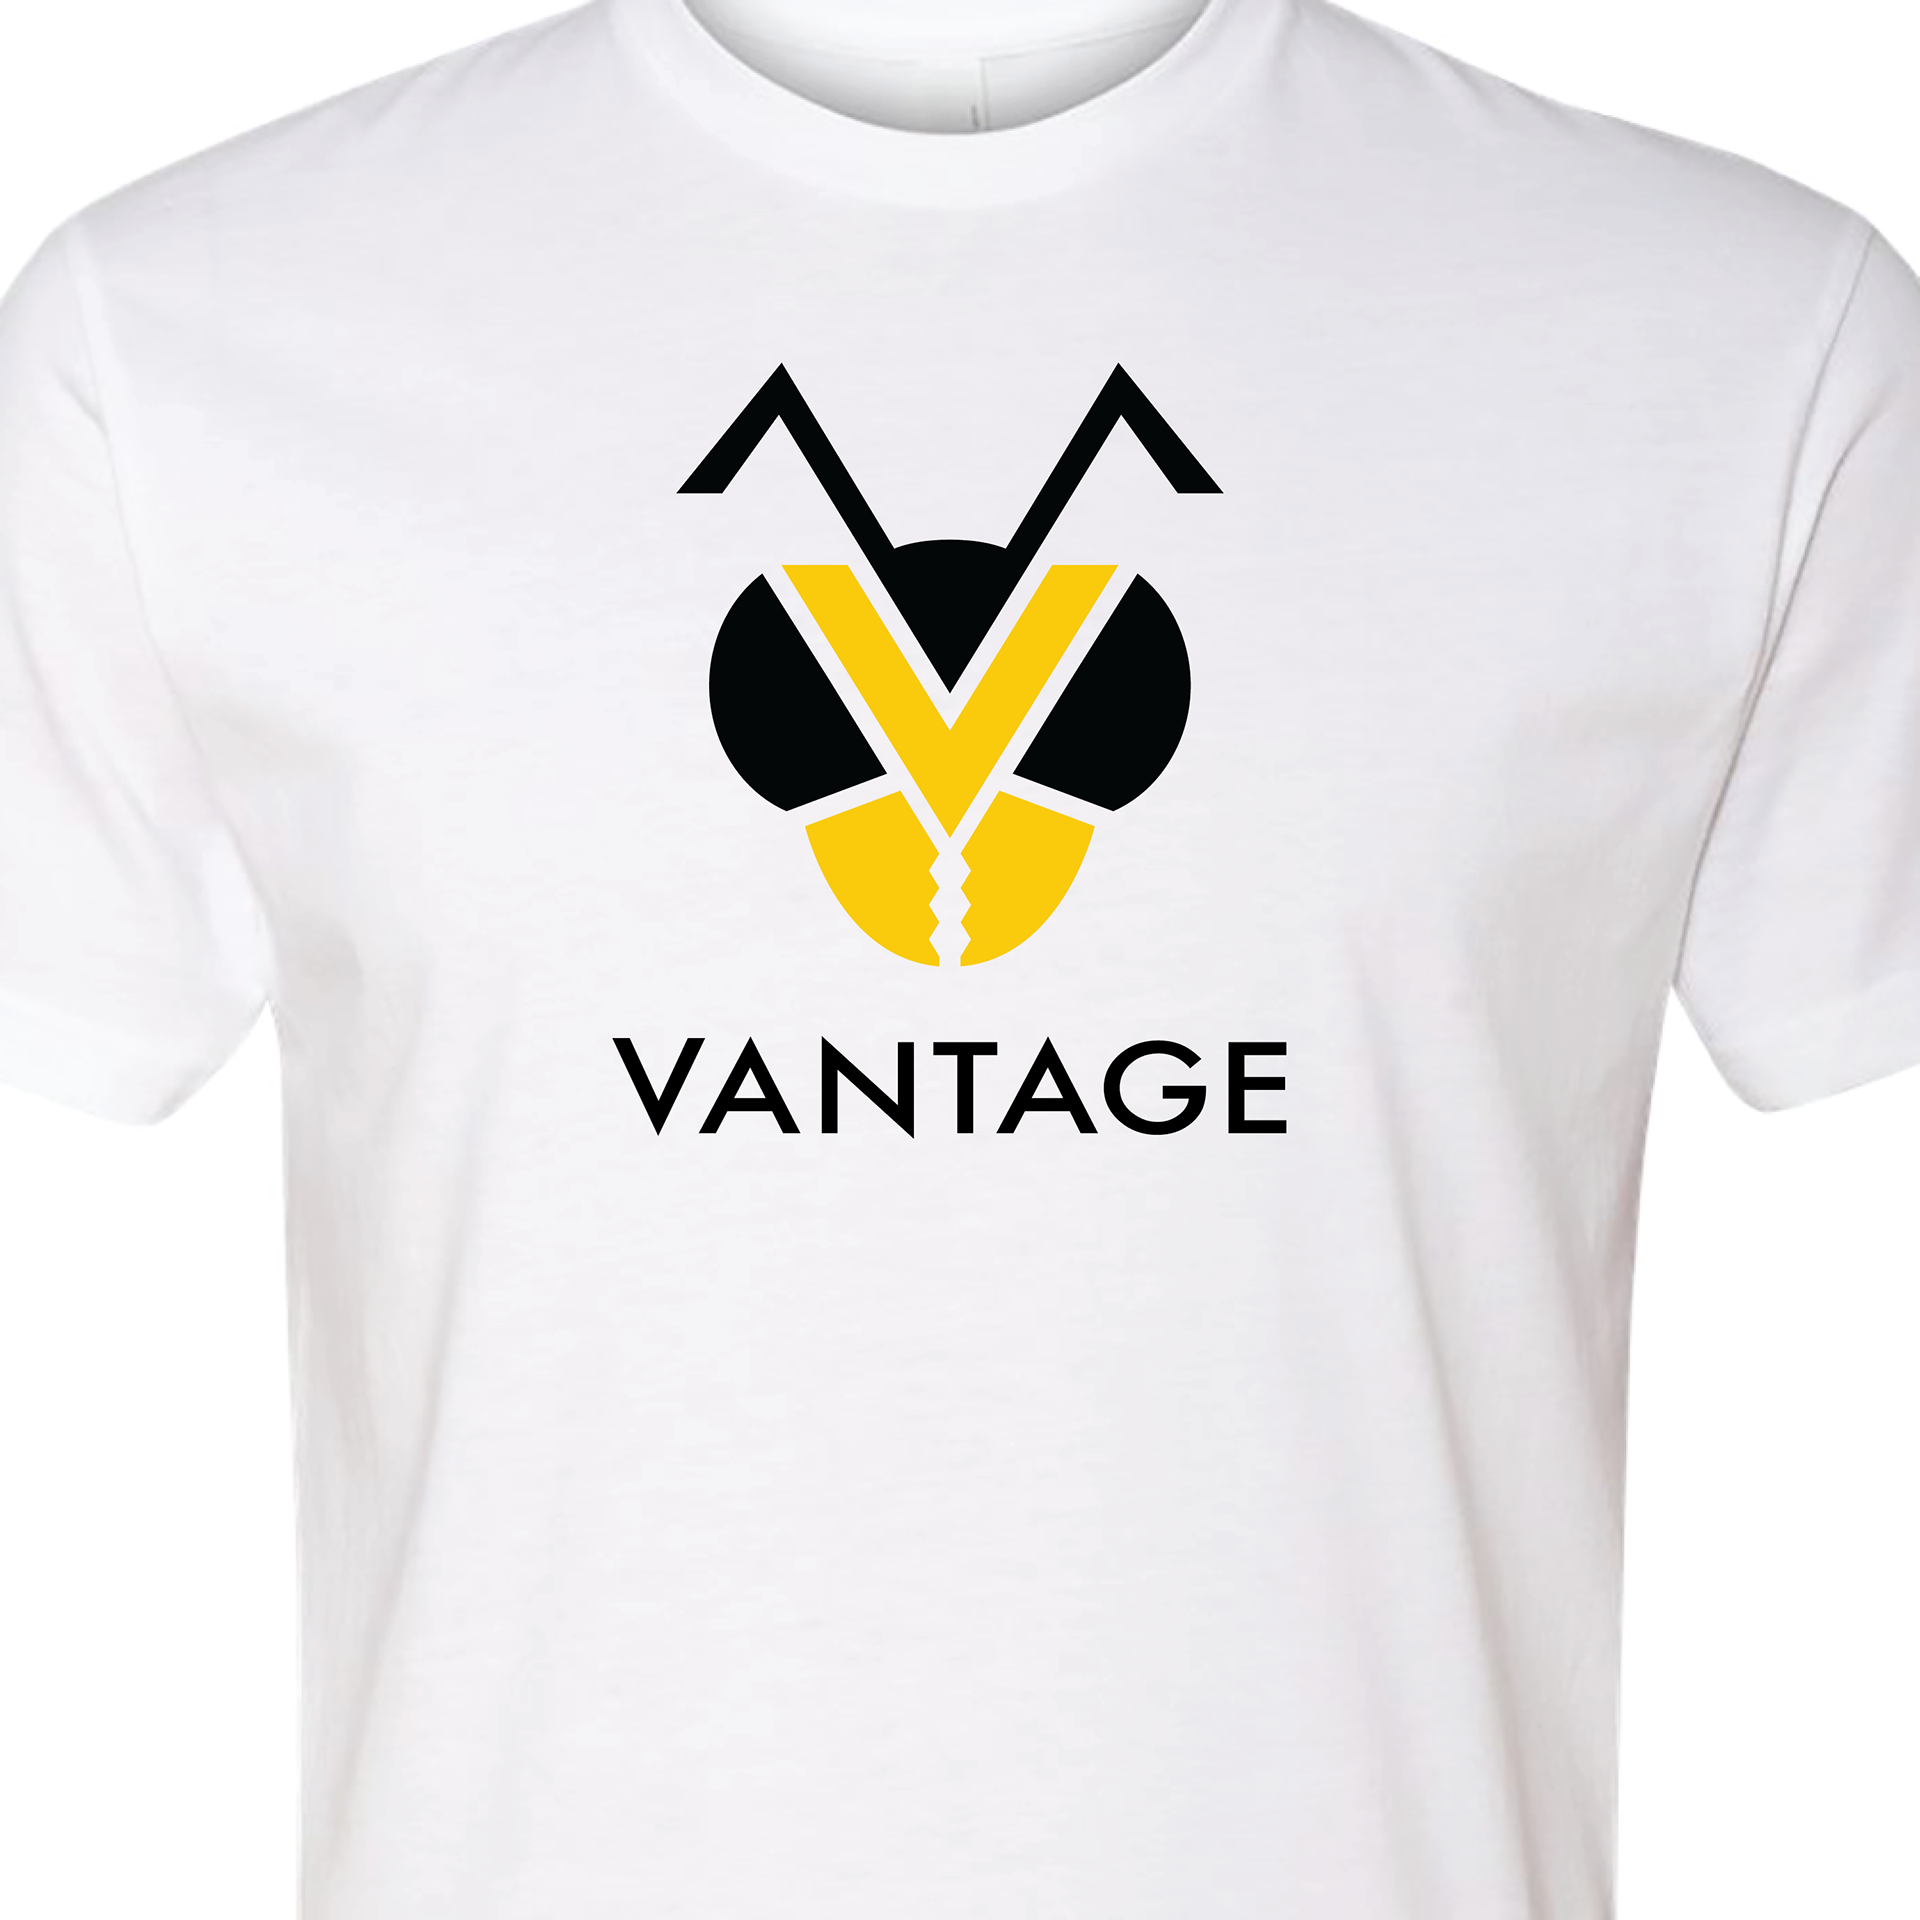 9a535423 A few months ago I was given the opportunity to design a t-shirt for a pest  control company called Vantage. They wanted a bug somehow in the  composition and ...